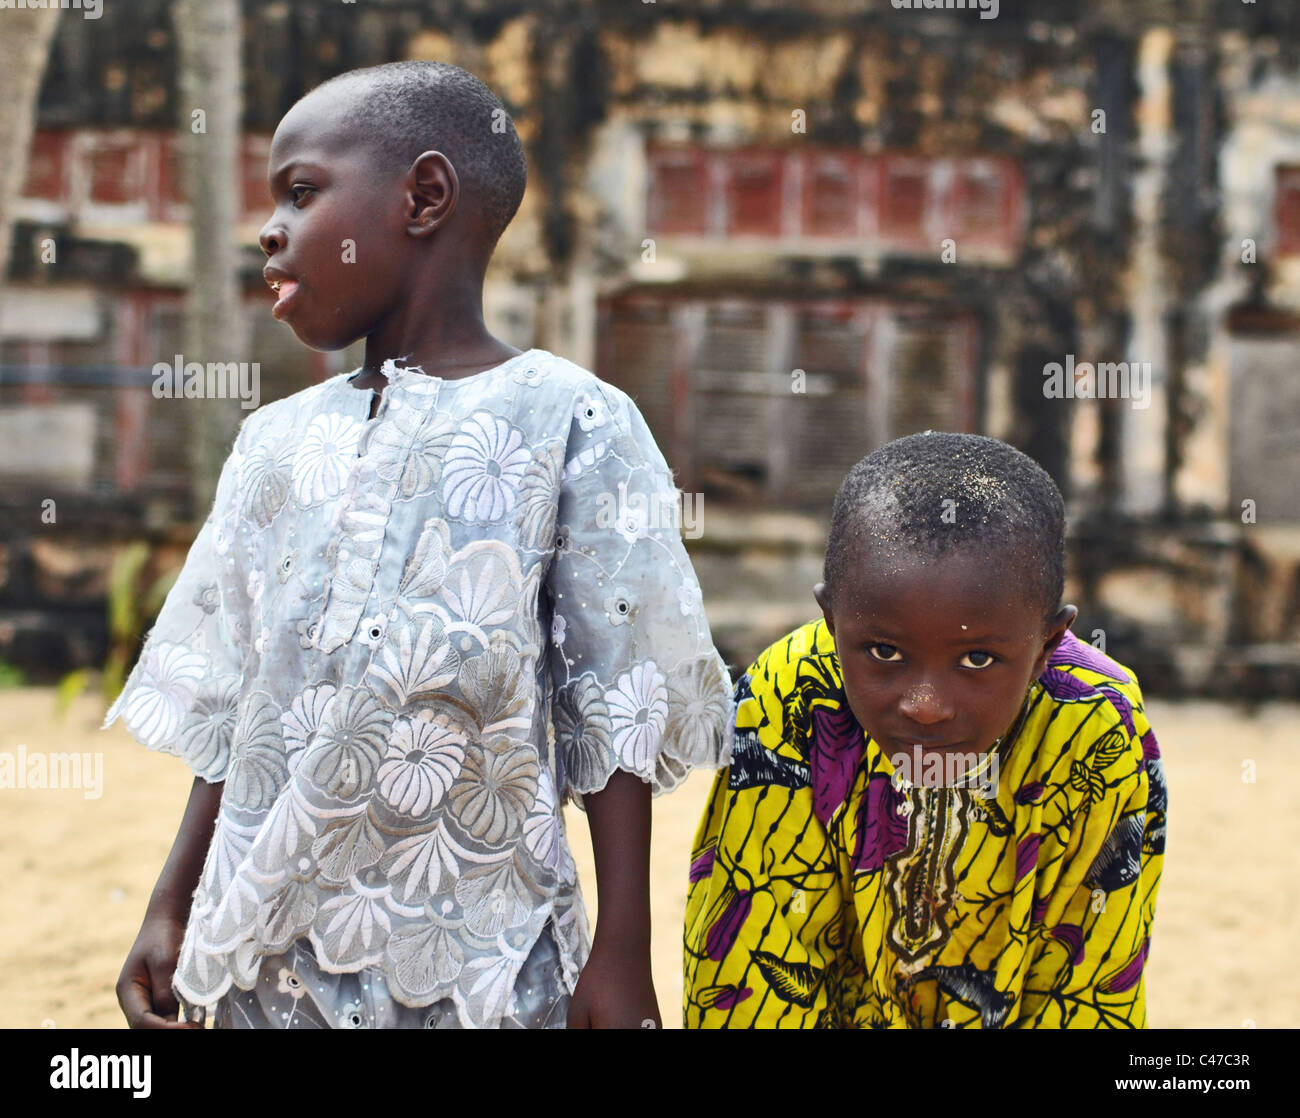 Ivory Coast portrait - Stock Image